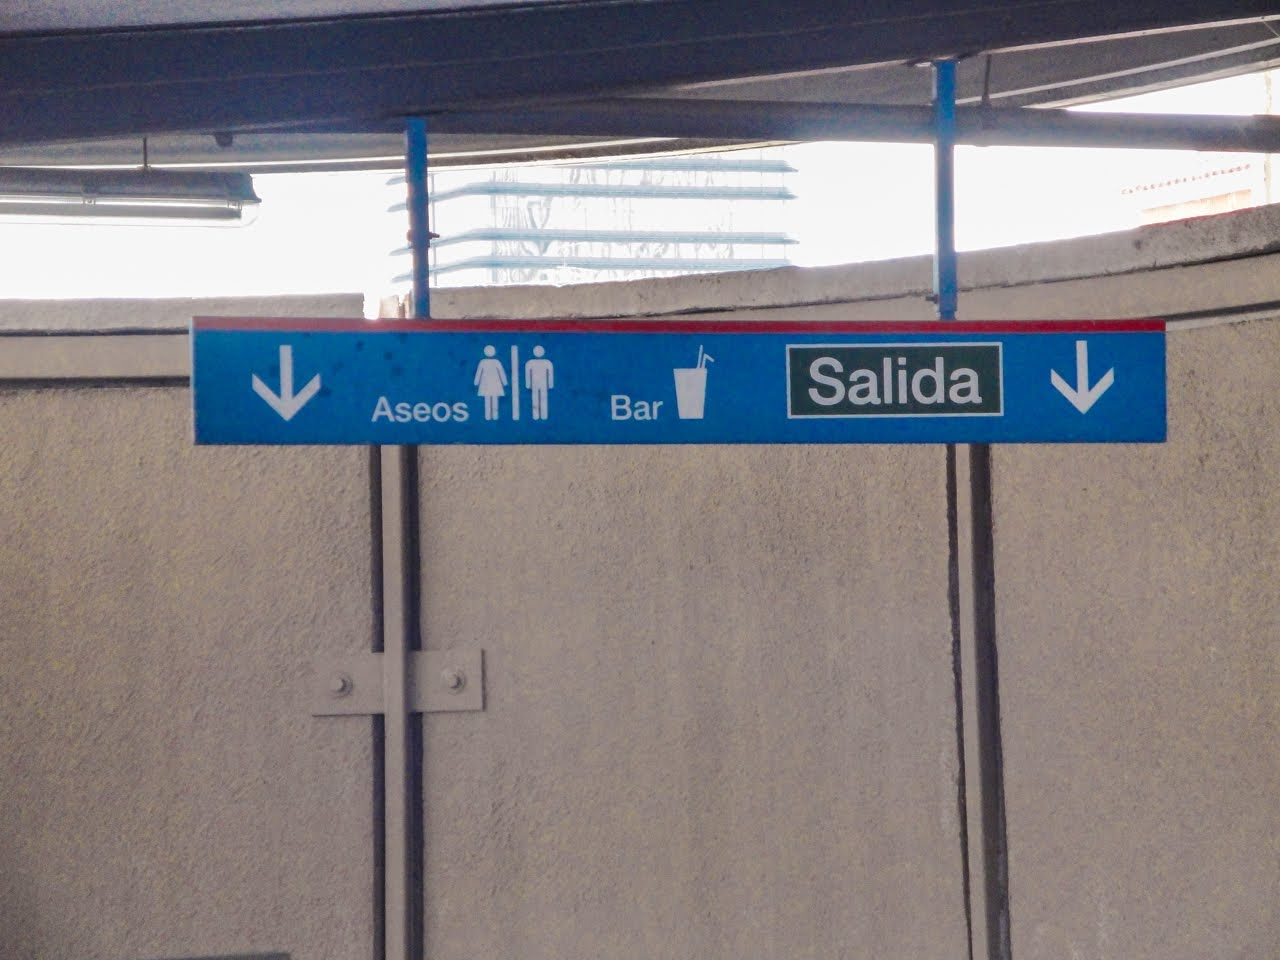 A sign showing the direction of the bathrooms, bar, and exit